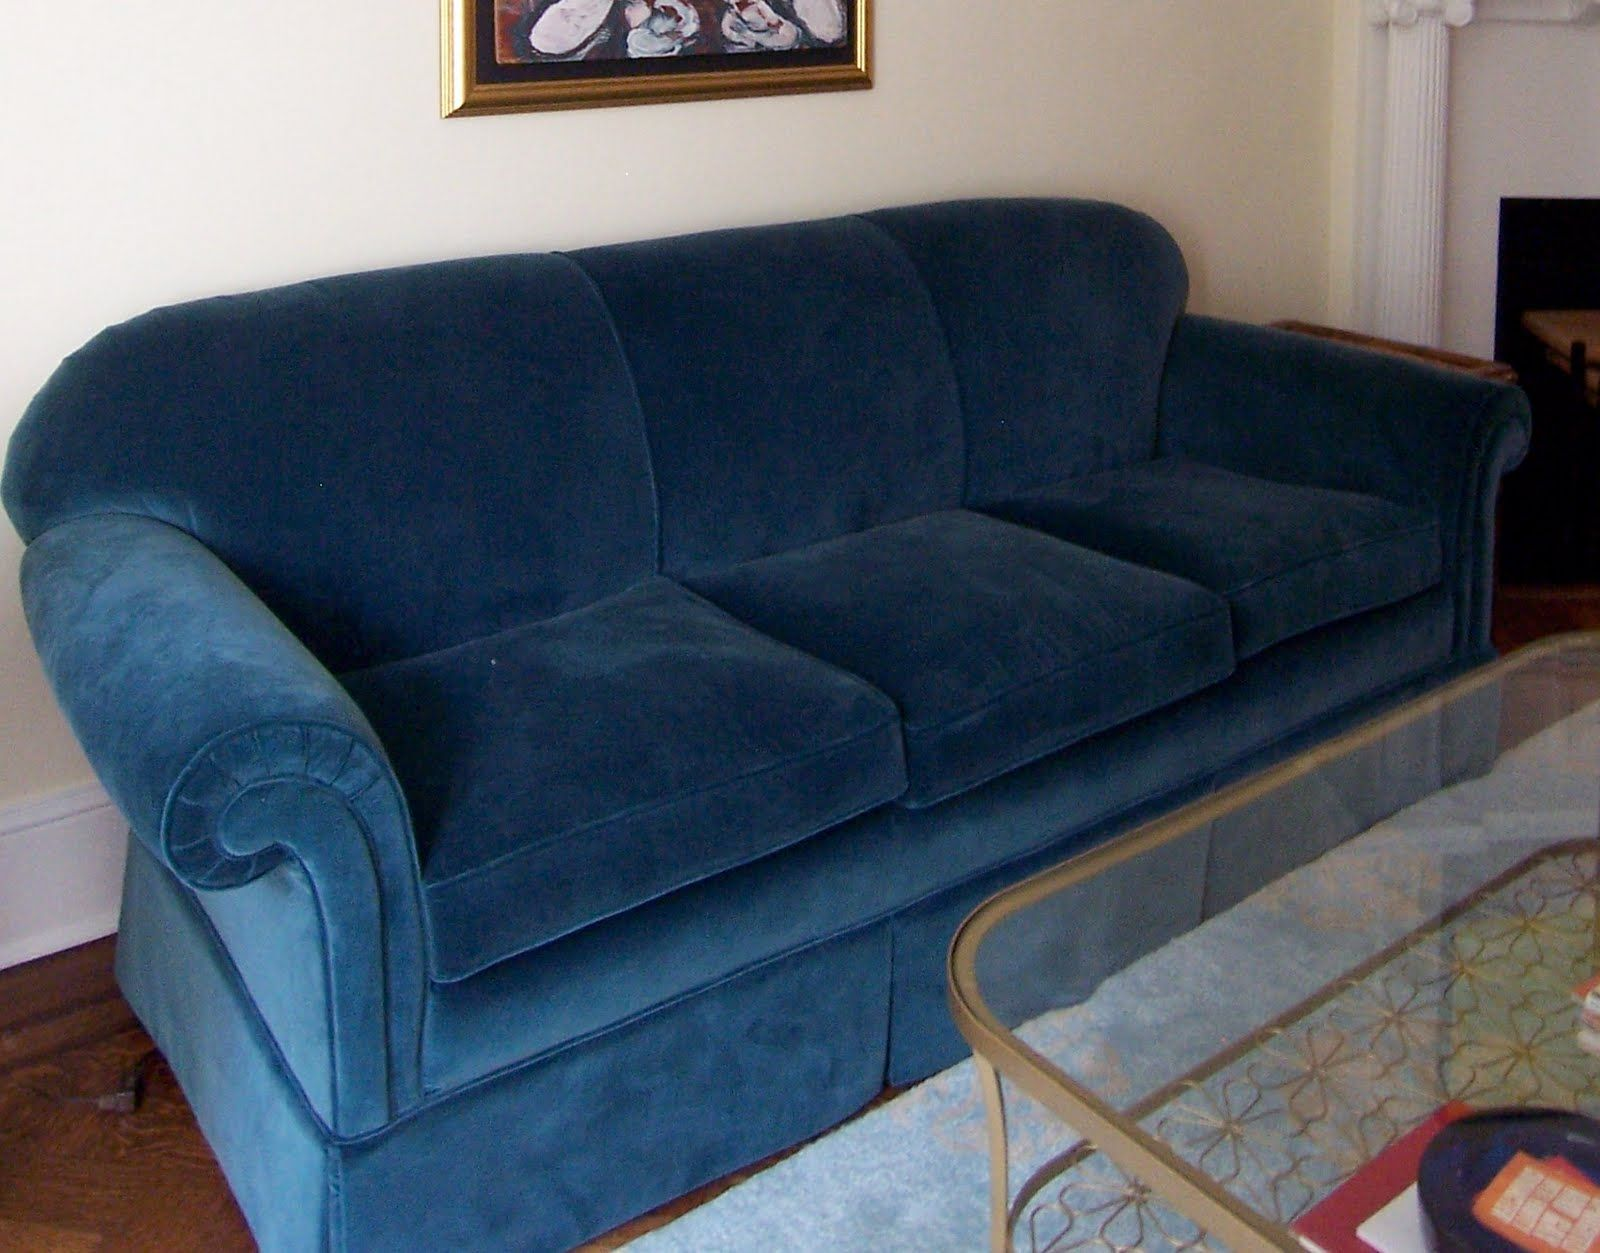 Awesome Sofa Recover Trend Sofa Recover 43 With Additional Sofas